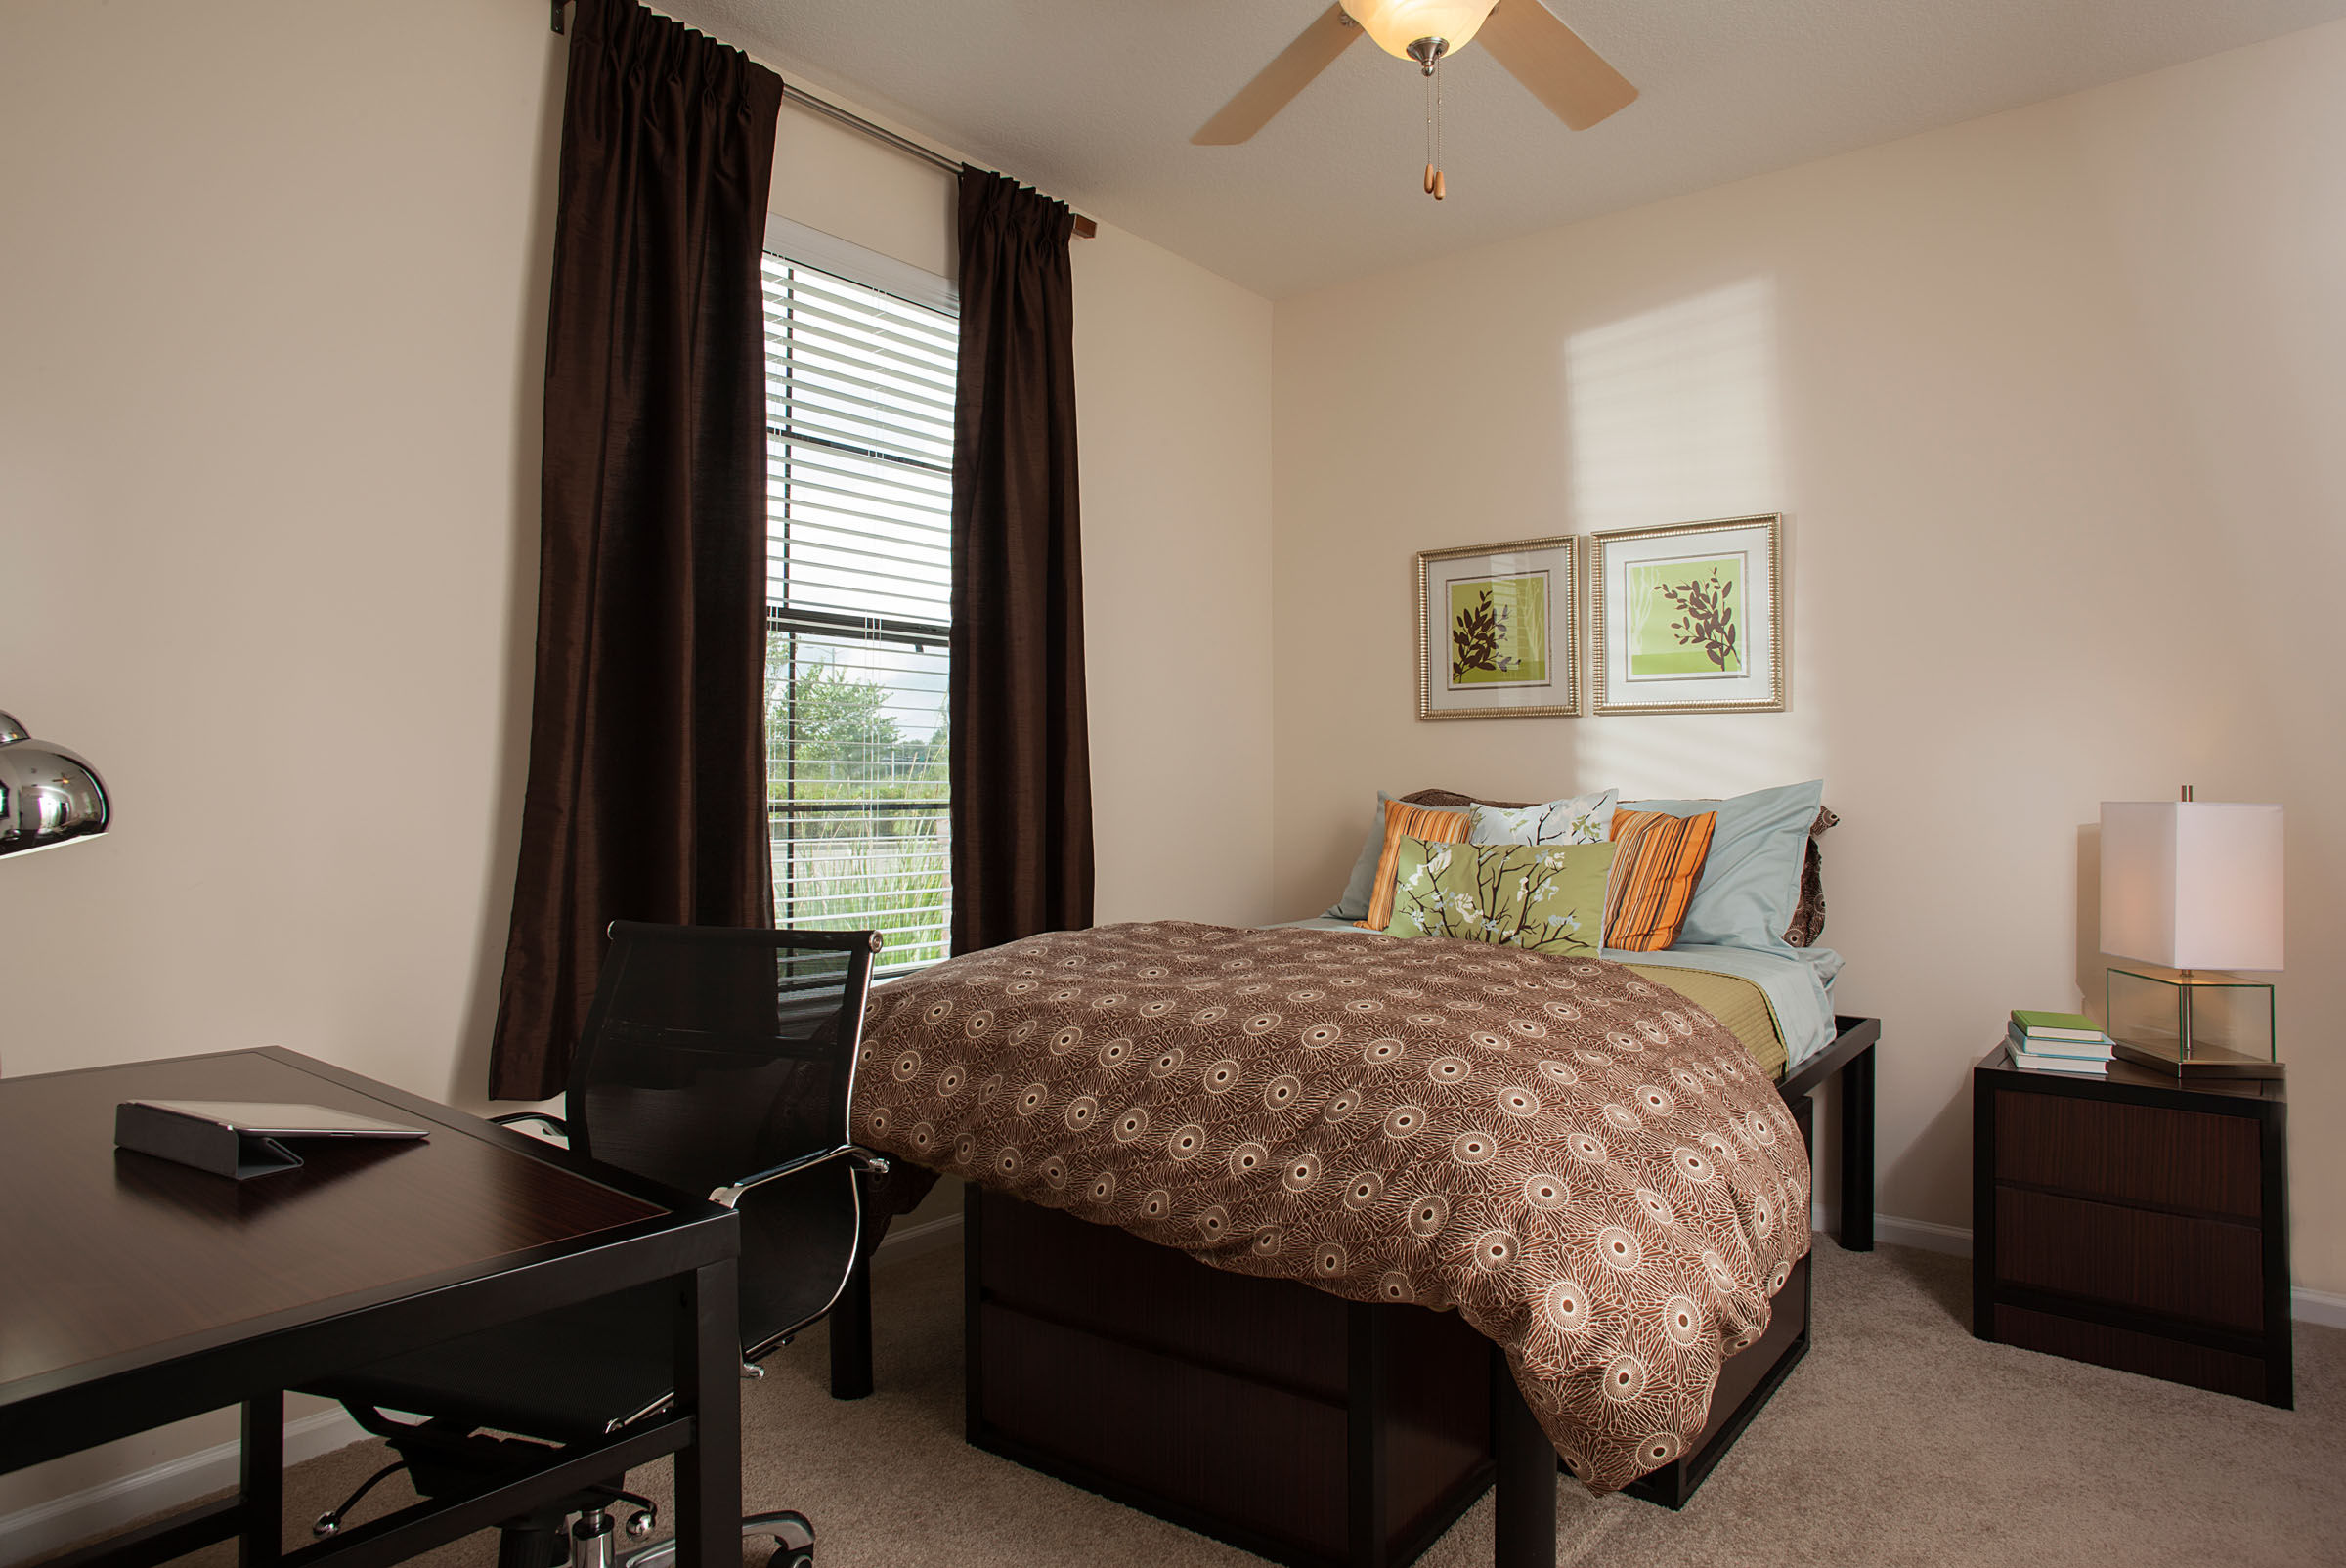 Canopy UCribs - 1 bedroom apartments gainesville fl